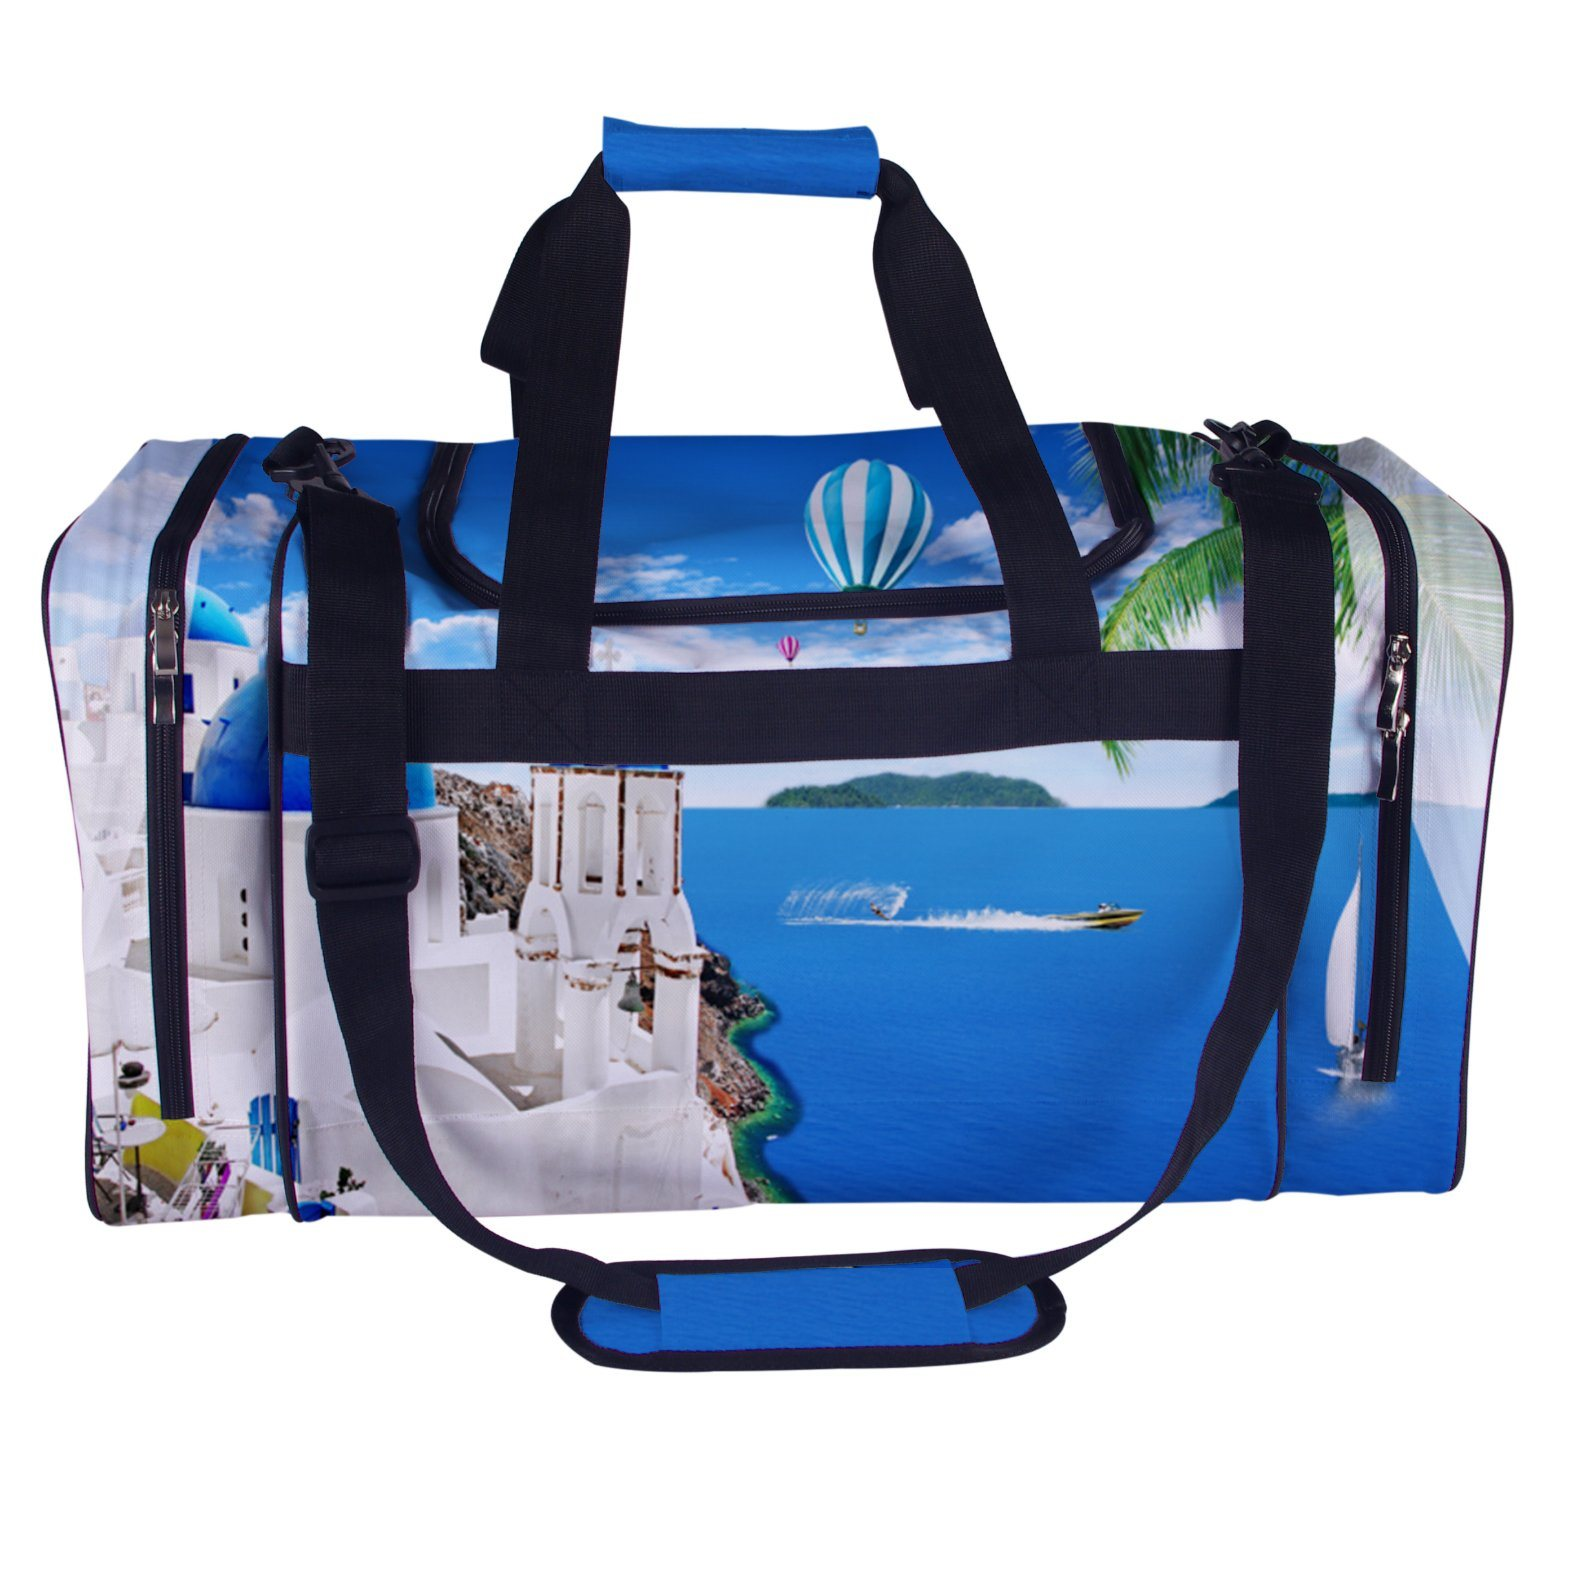 71b2065a0322 China 600d 1680d Polyester Gym Locker Bags Large Football Travel Duffel Bags  - China Gym Locker Bags